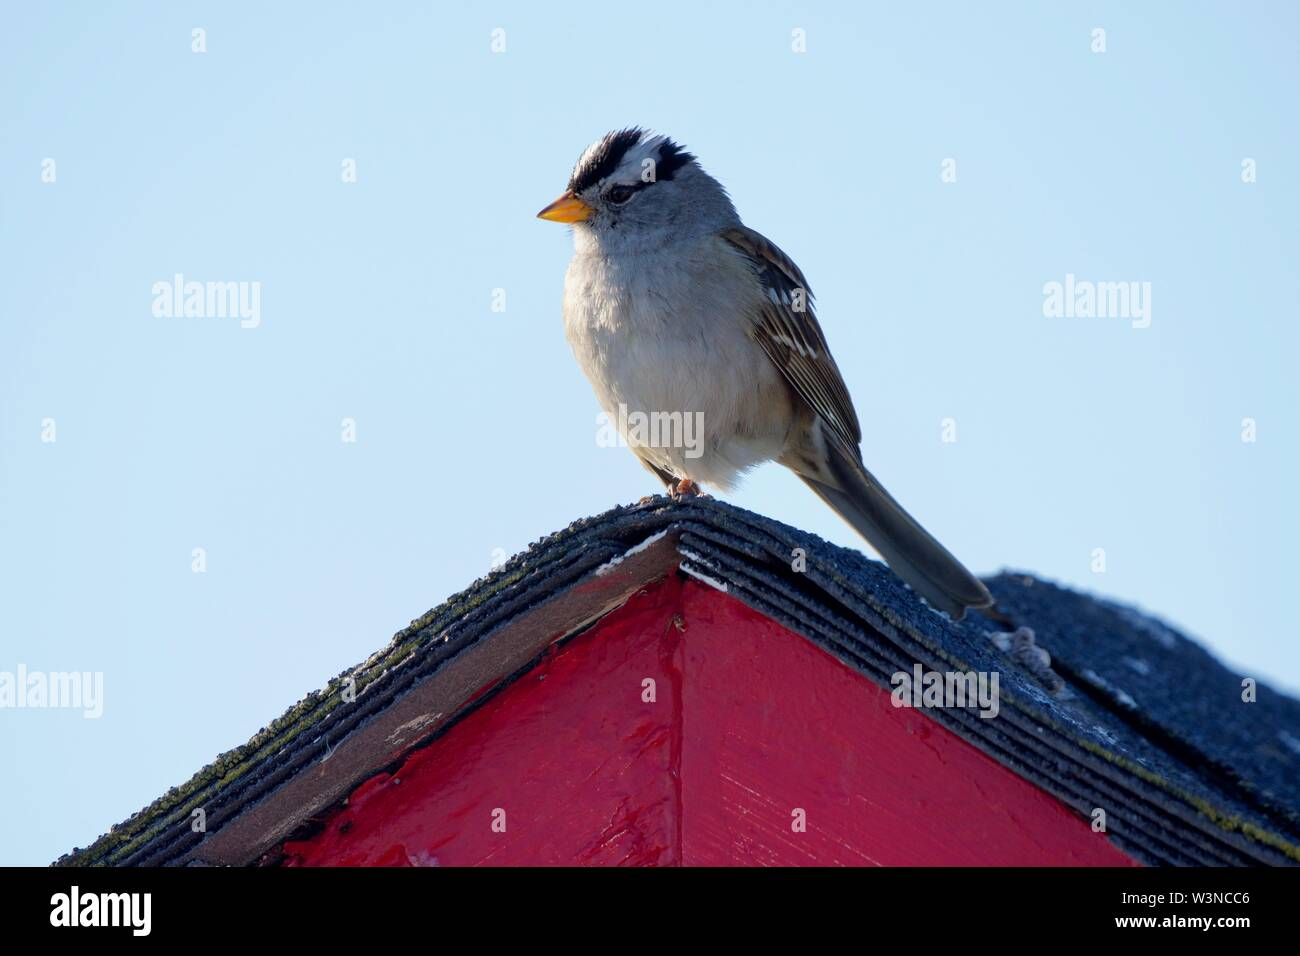 Adult white-crowned sparrow perches on purple peak of shed roof, Victoria, British Columbia, - Stock Image